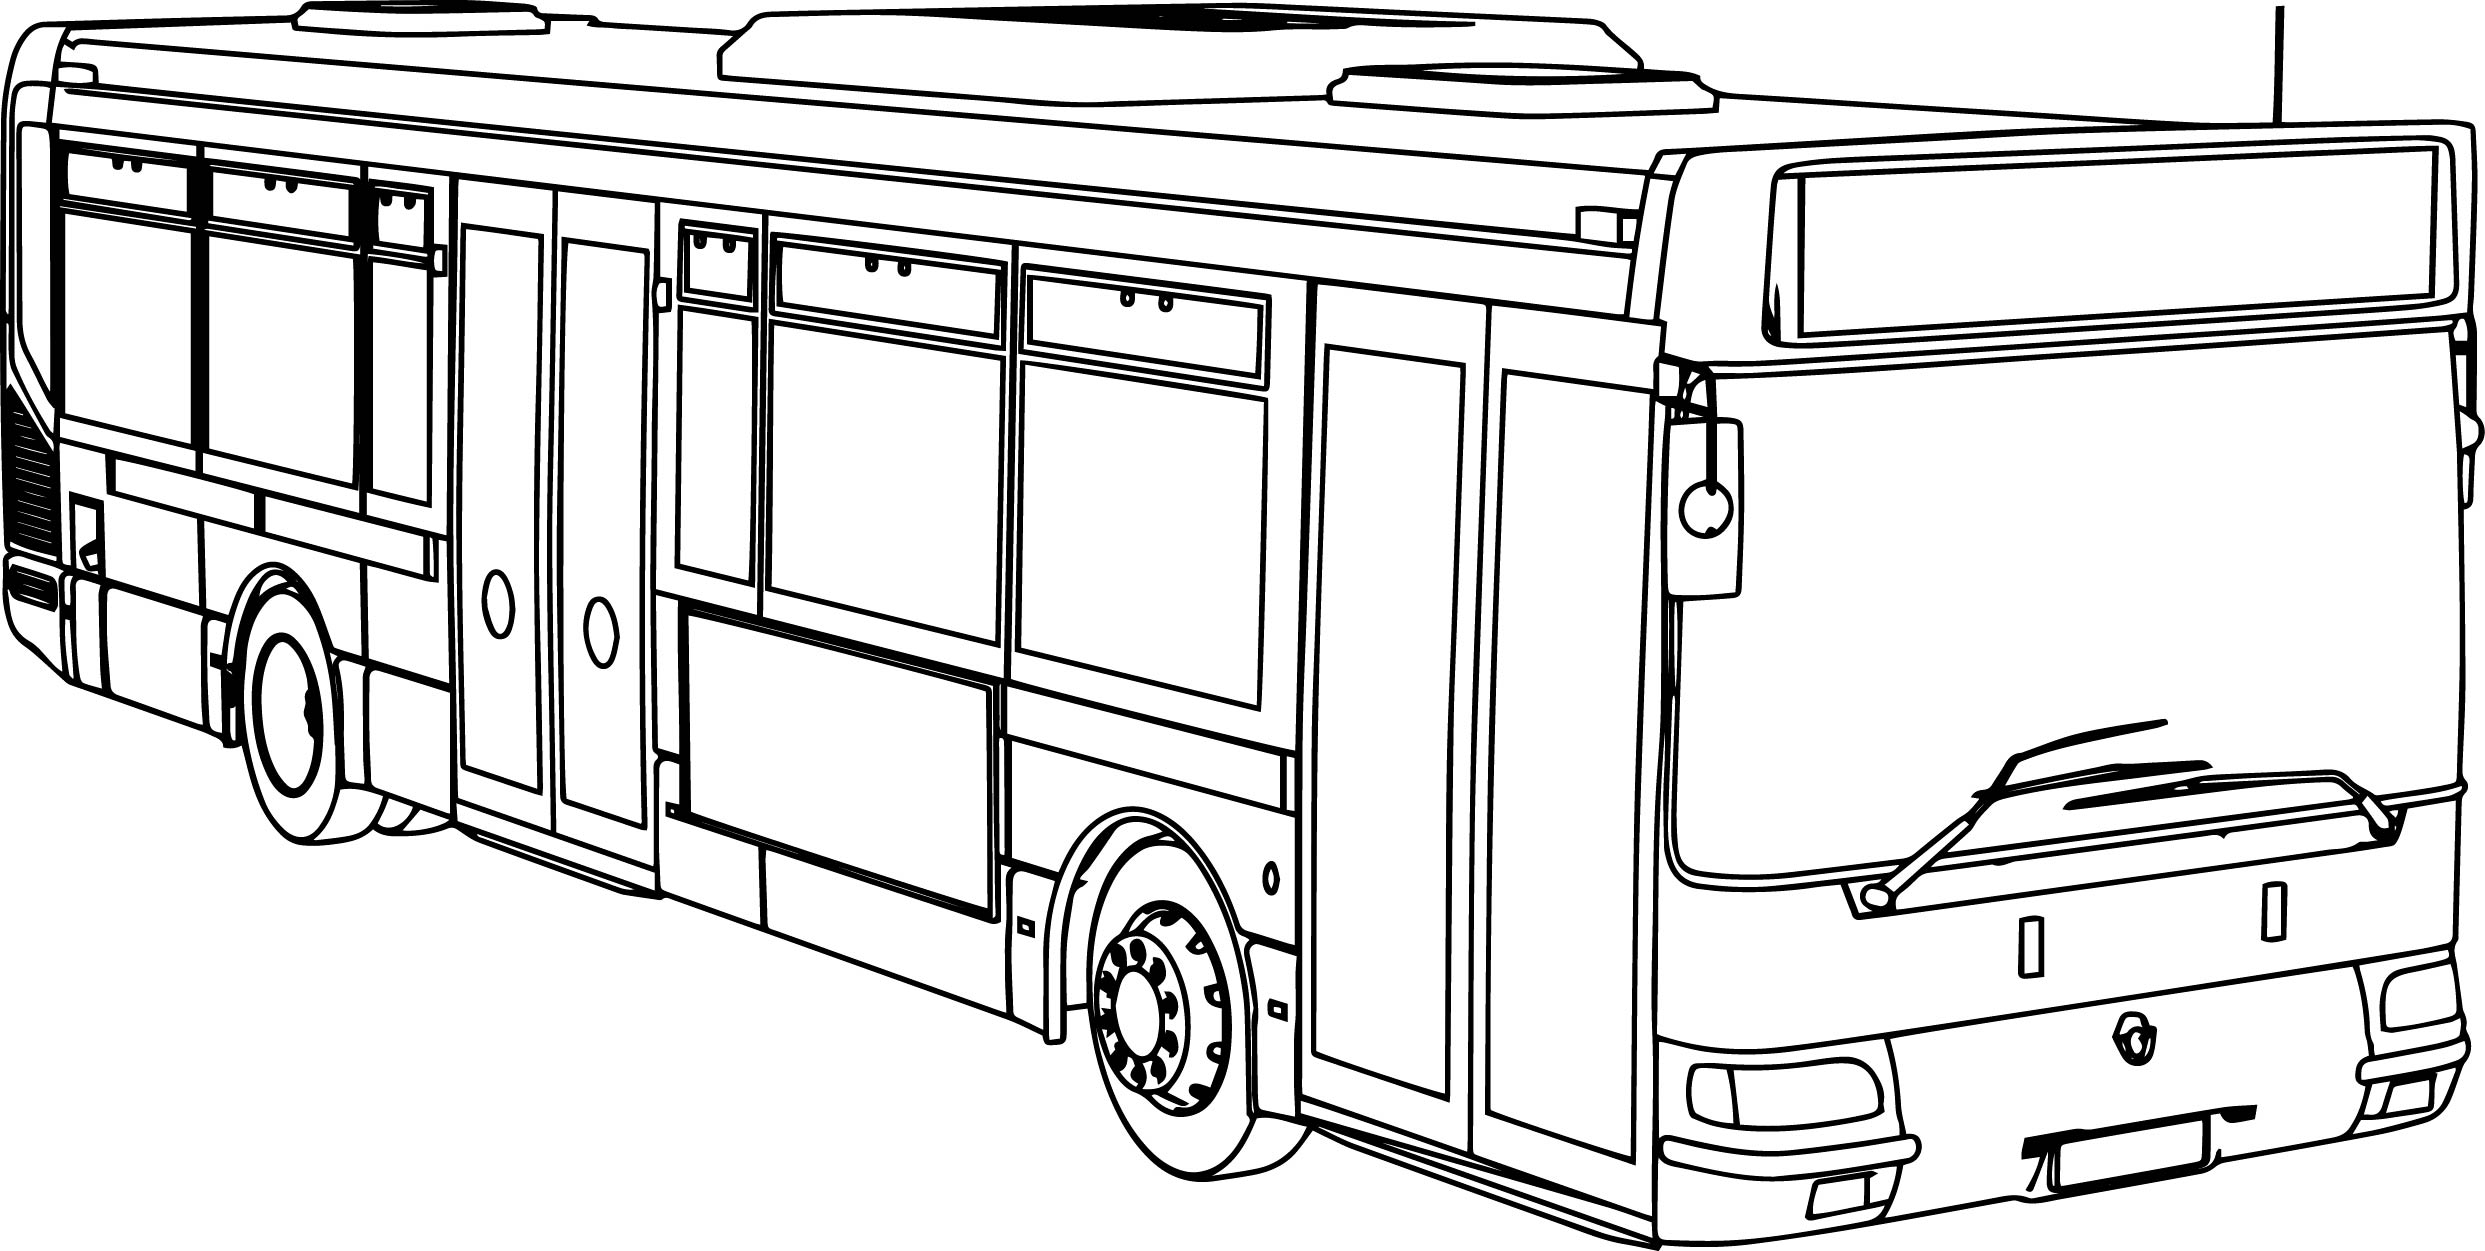 coloring pages bus - photo#25